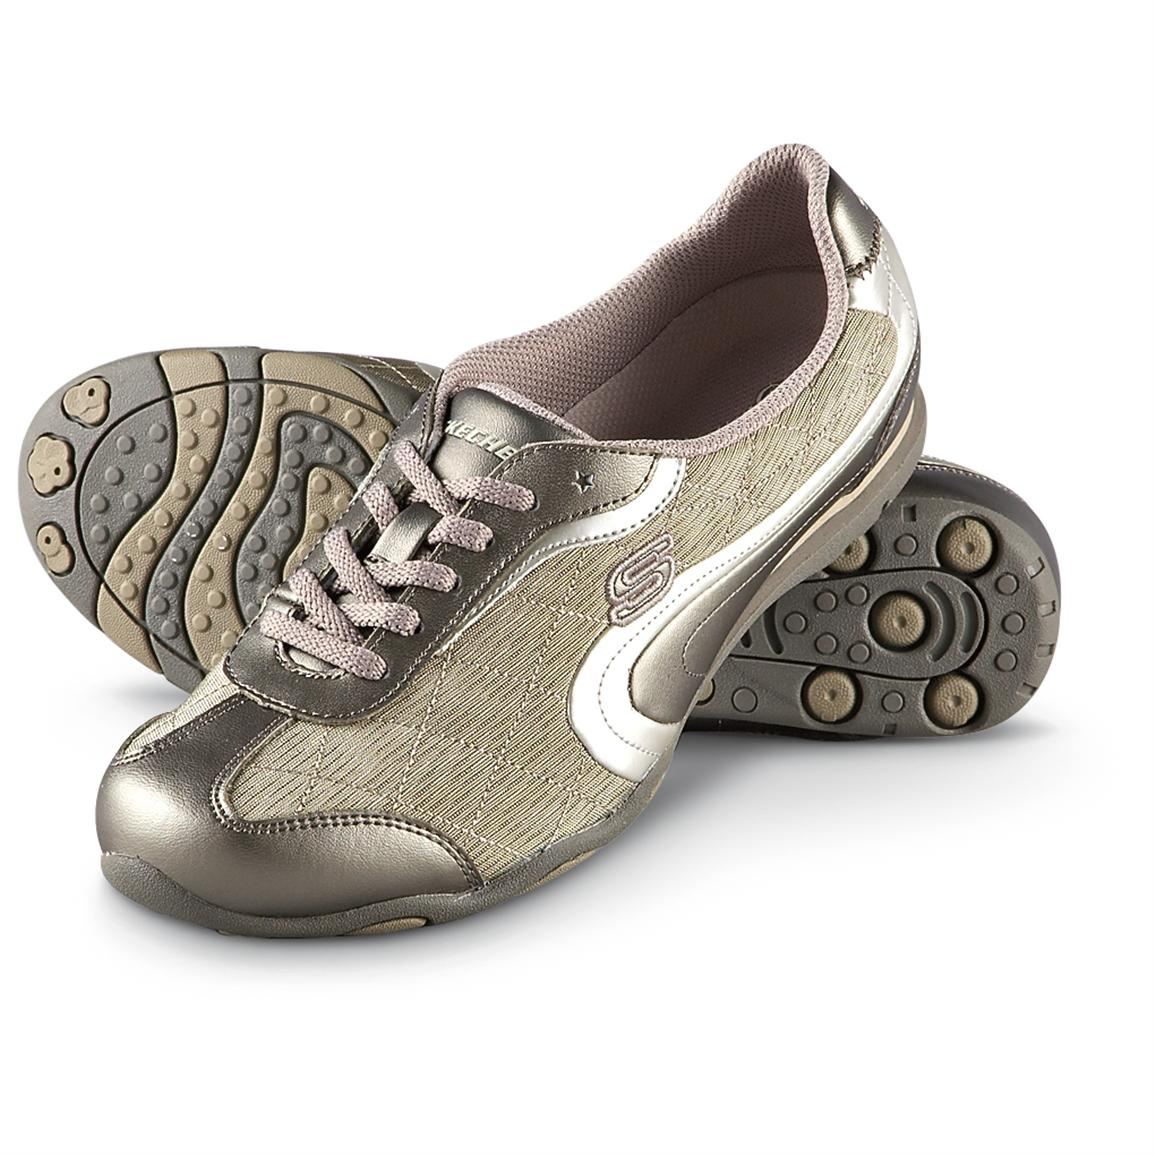 women's skechers® route 66 shoes, taupe - 186881, running shoes